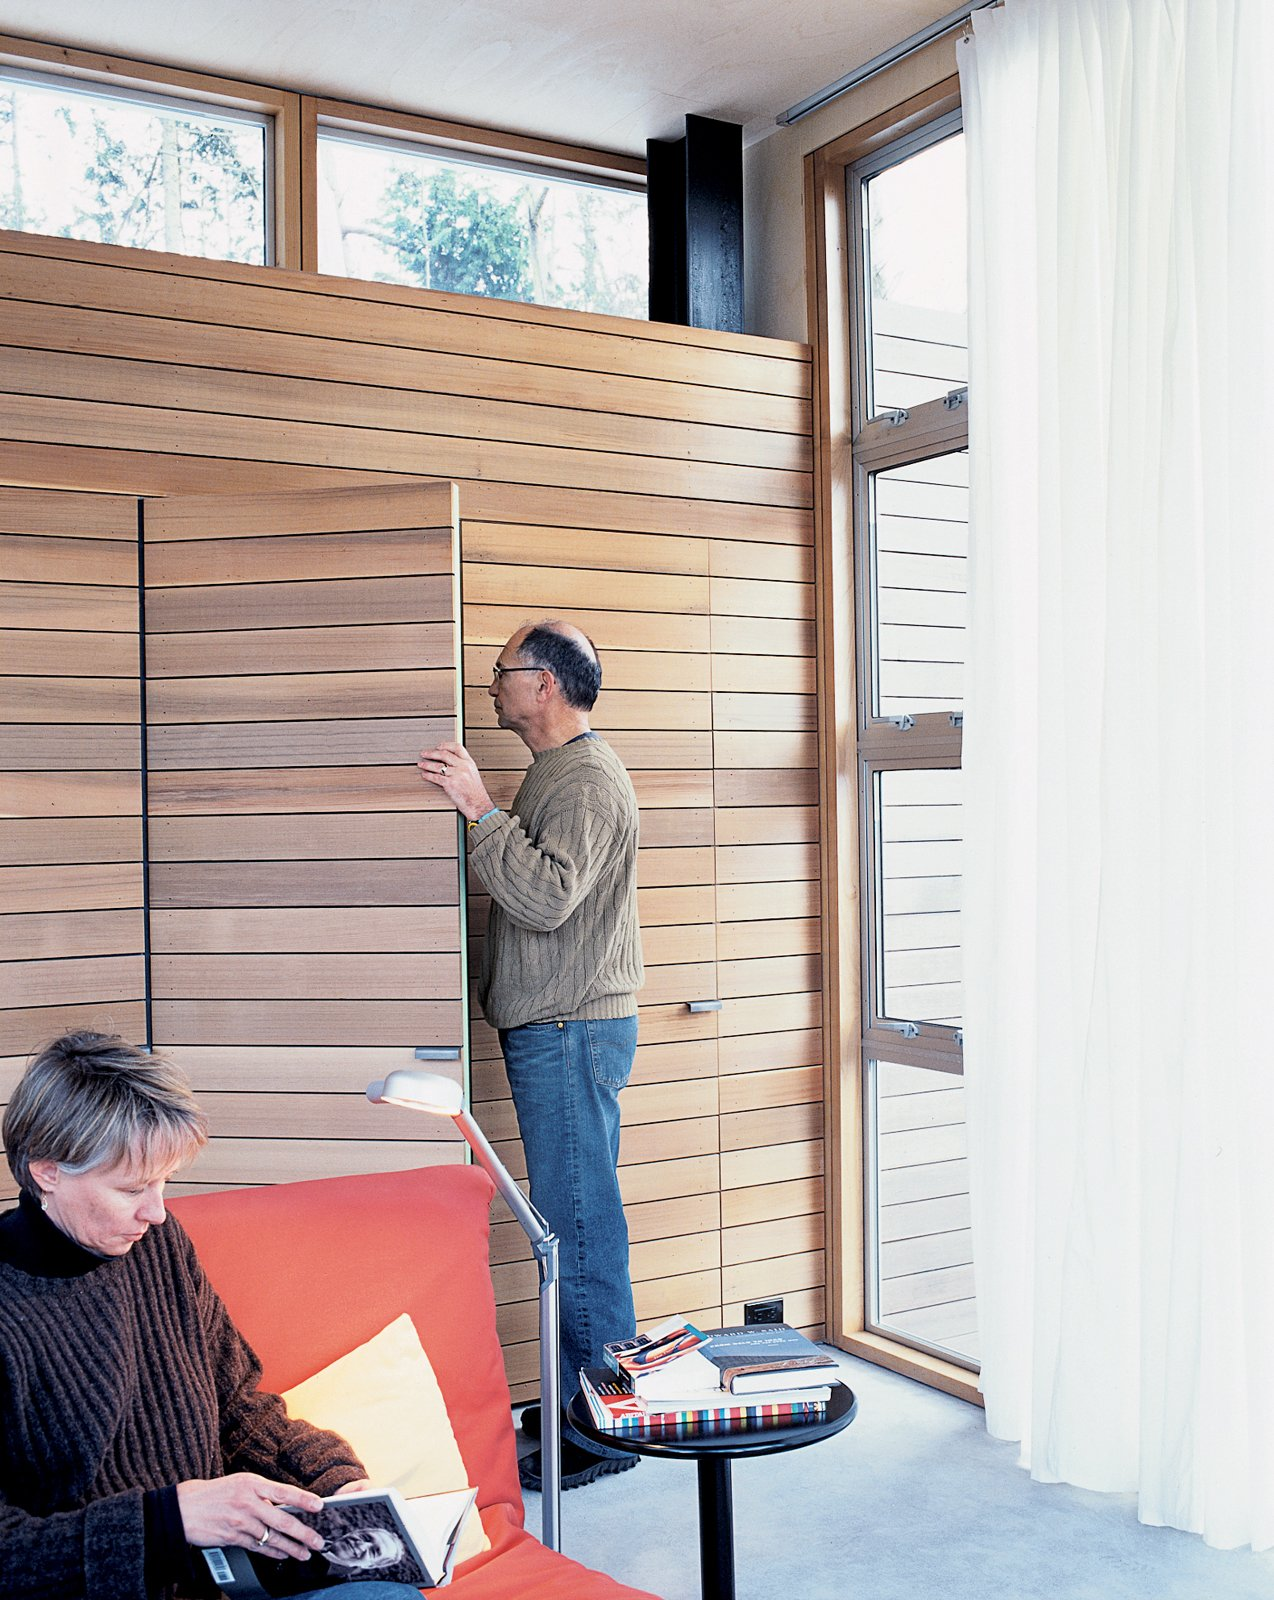 """In their search to find an alternative to drywall, the couple discovered this lightweight, nontoxic Italian poplar siding at a local lumberyard. """"The Seattle Opera uses it for stage sets, and the lumberyard carries a large amount of the product to outfit them,"""" says Pellecchia. Lite-Ply is about half the weight of conventional siding and can be fastened by staples. www.northamply.com/lite-ply.html  Storage Solutions: 7 Hidden Closets by Diana Budds"""